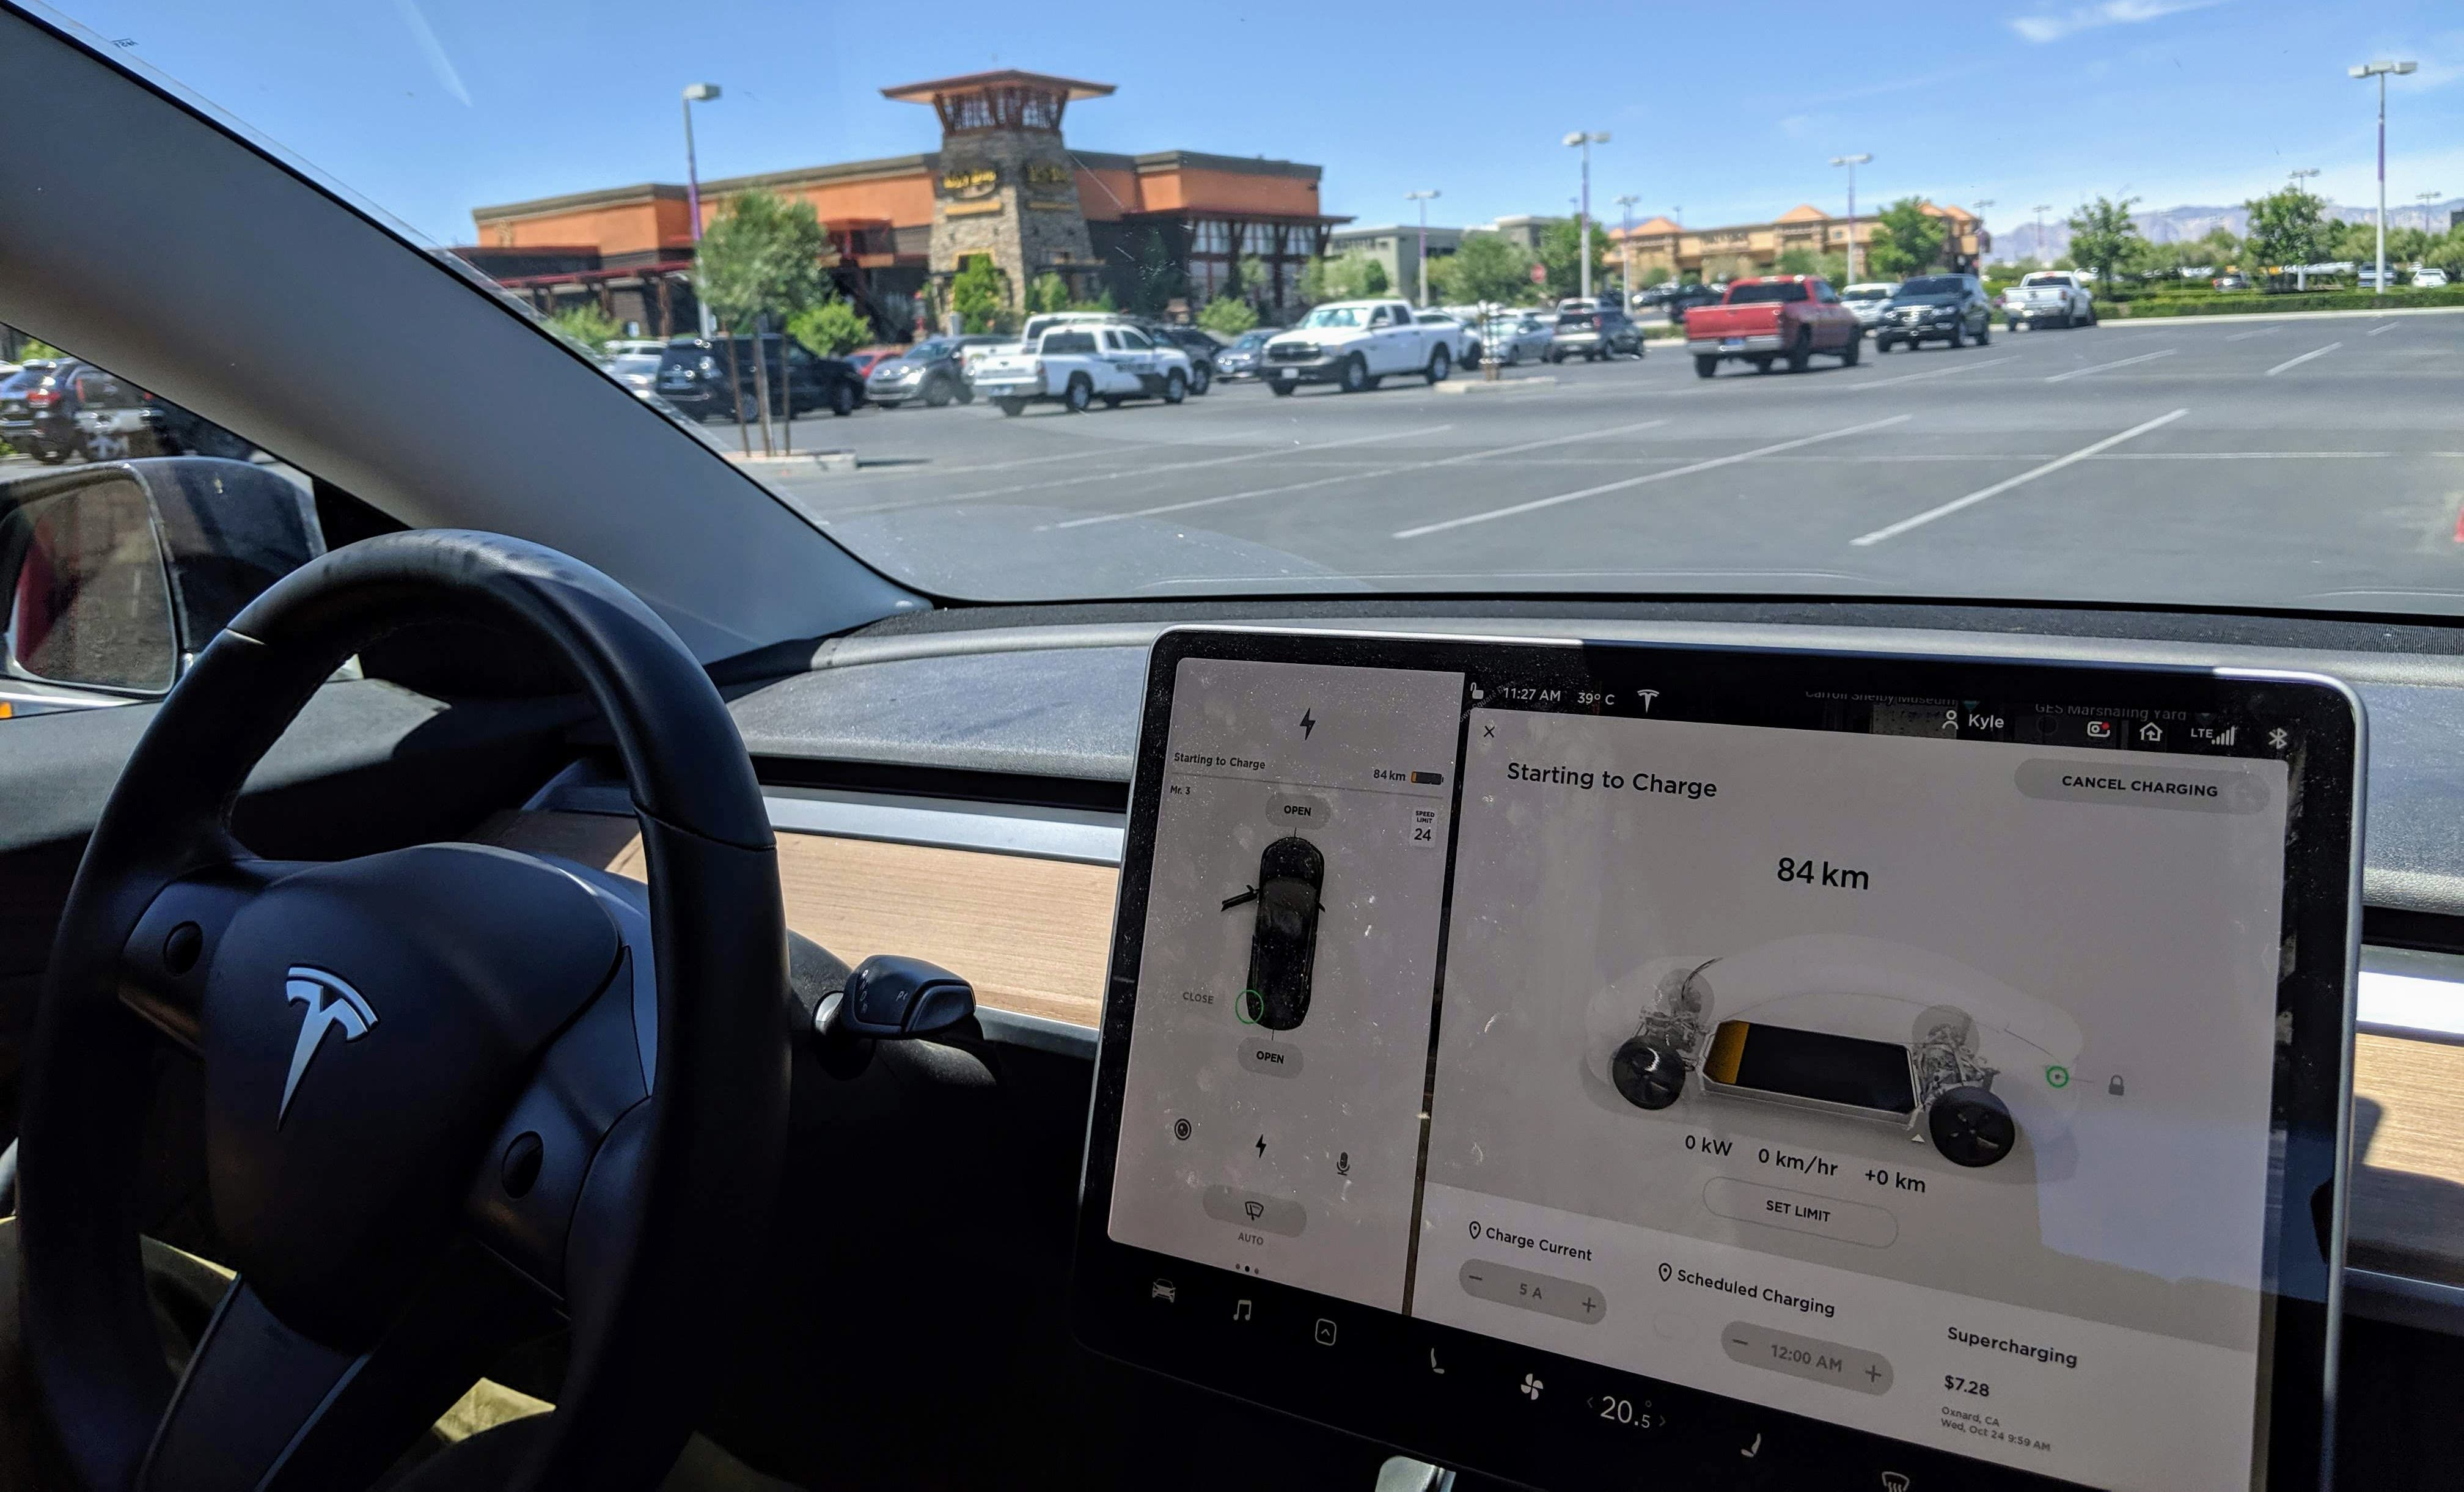 The South Las Vegas Tesla Supercharger. Image credit: Dennis Pascual. Used with permission.